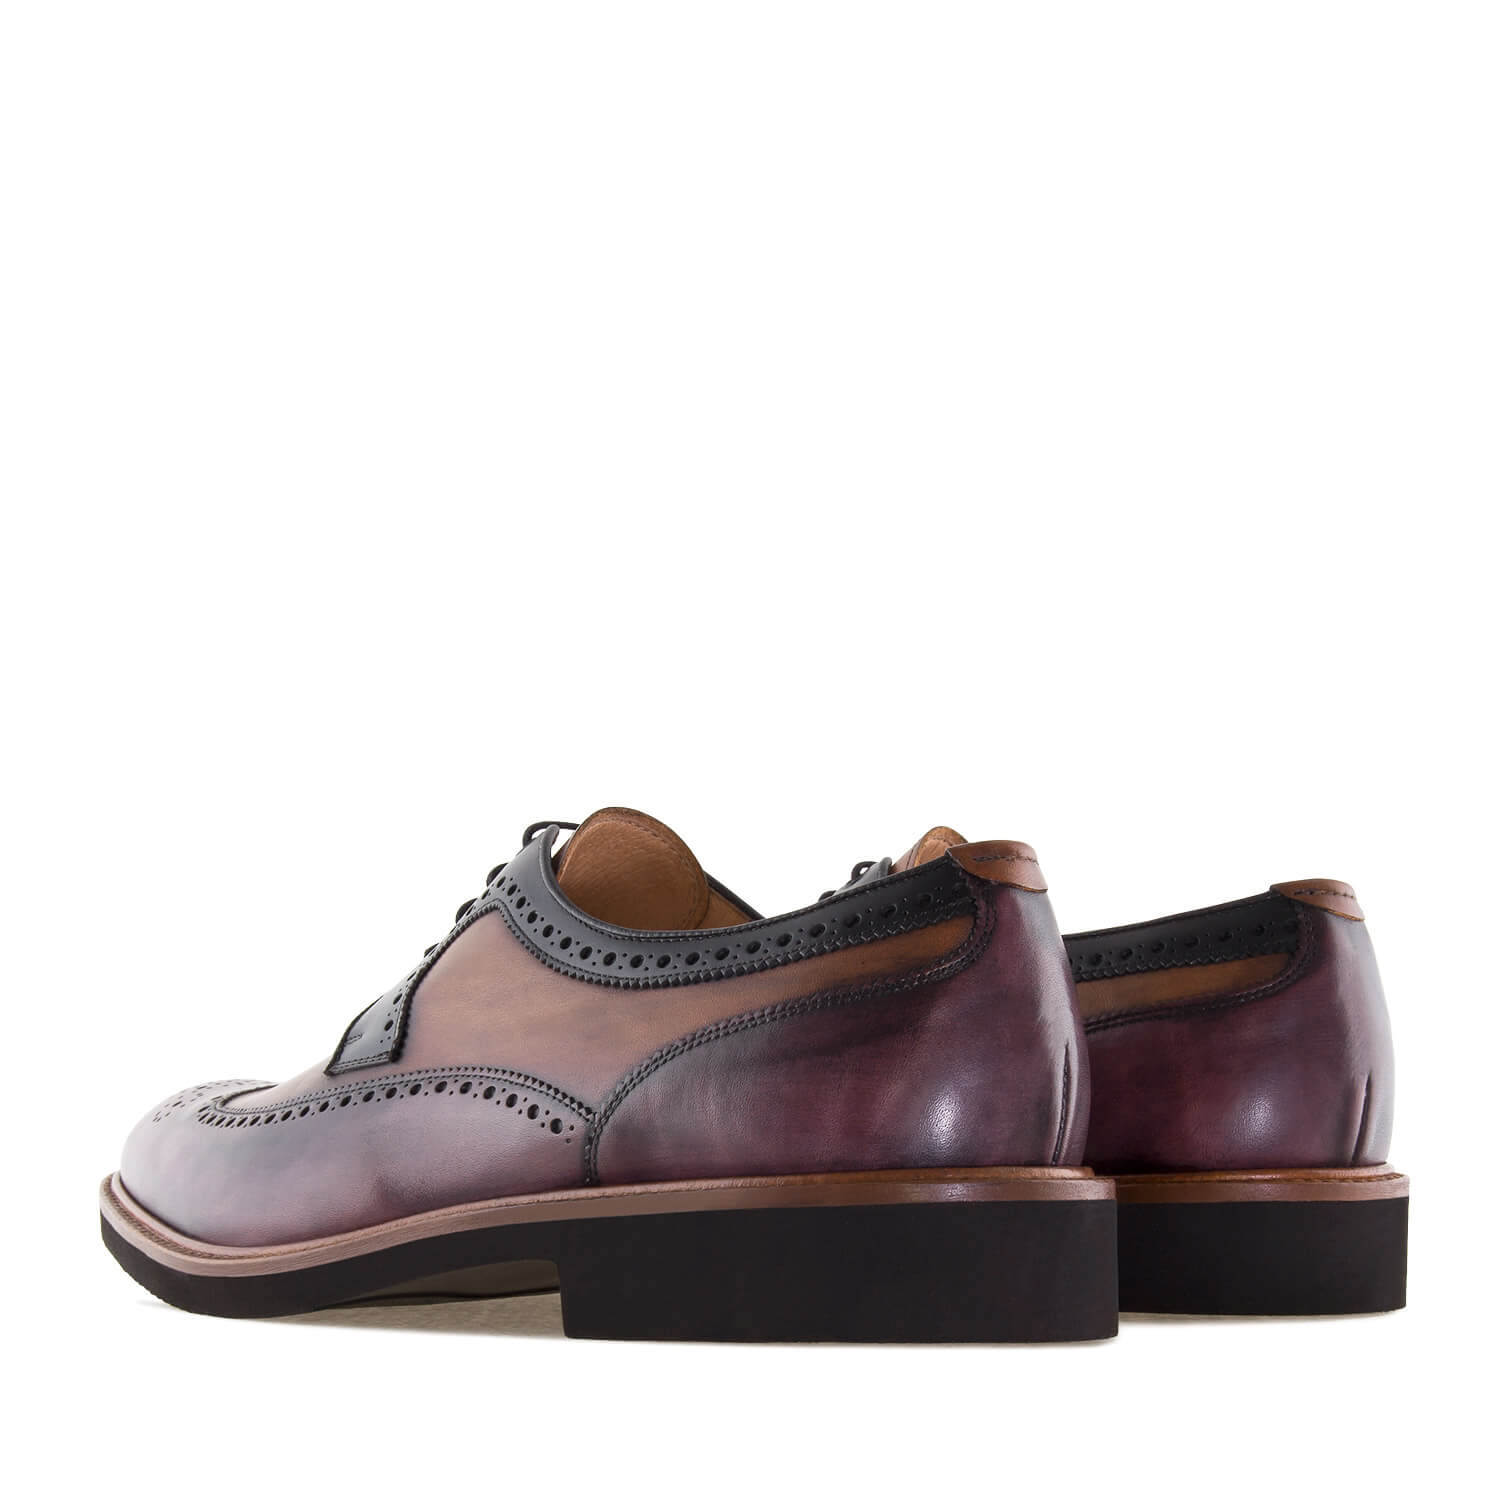 Oxford Shoes in Tricolor Leather